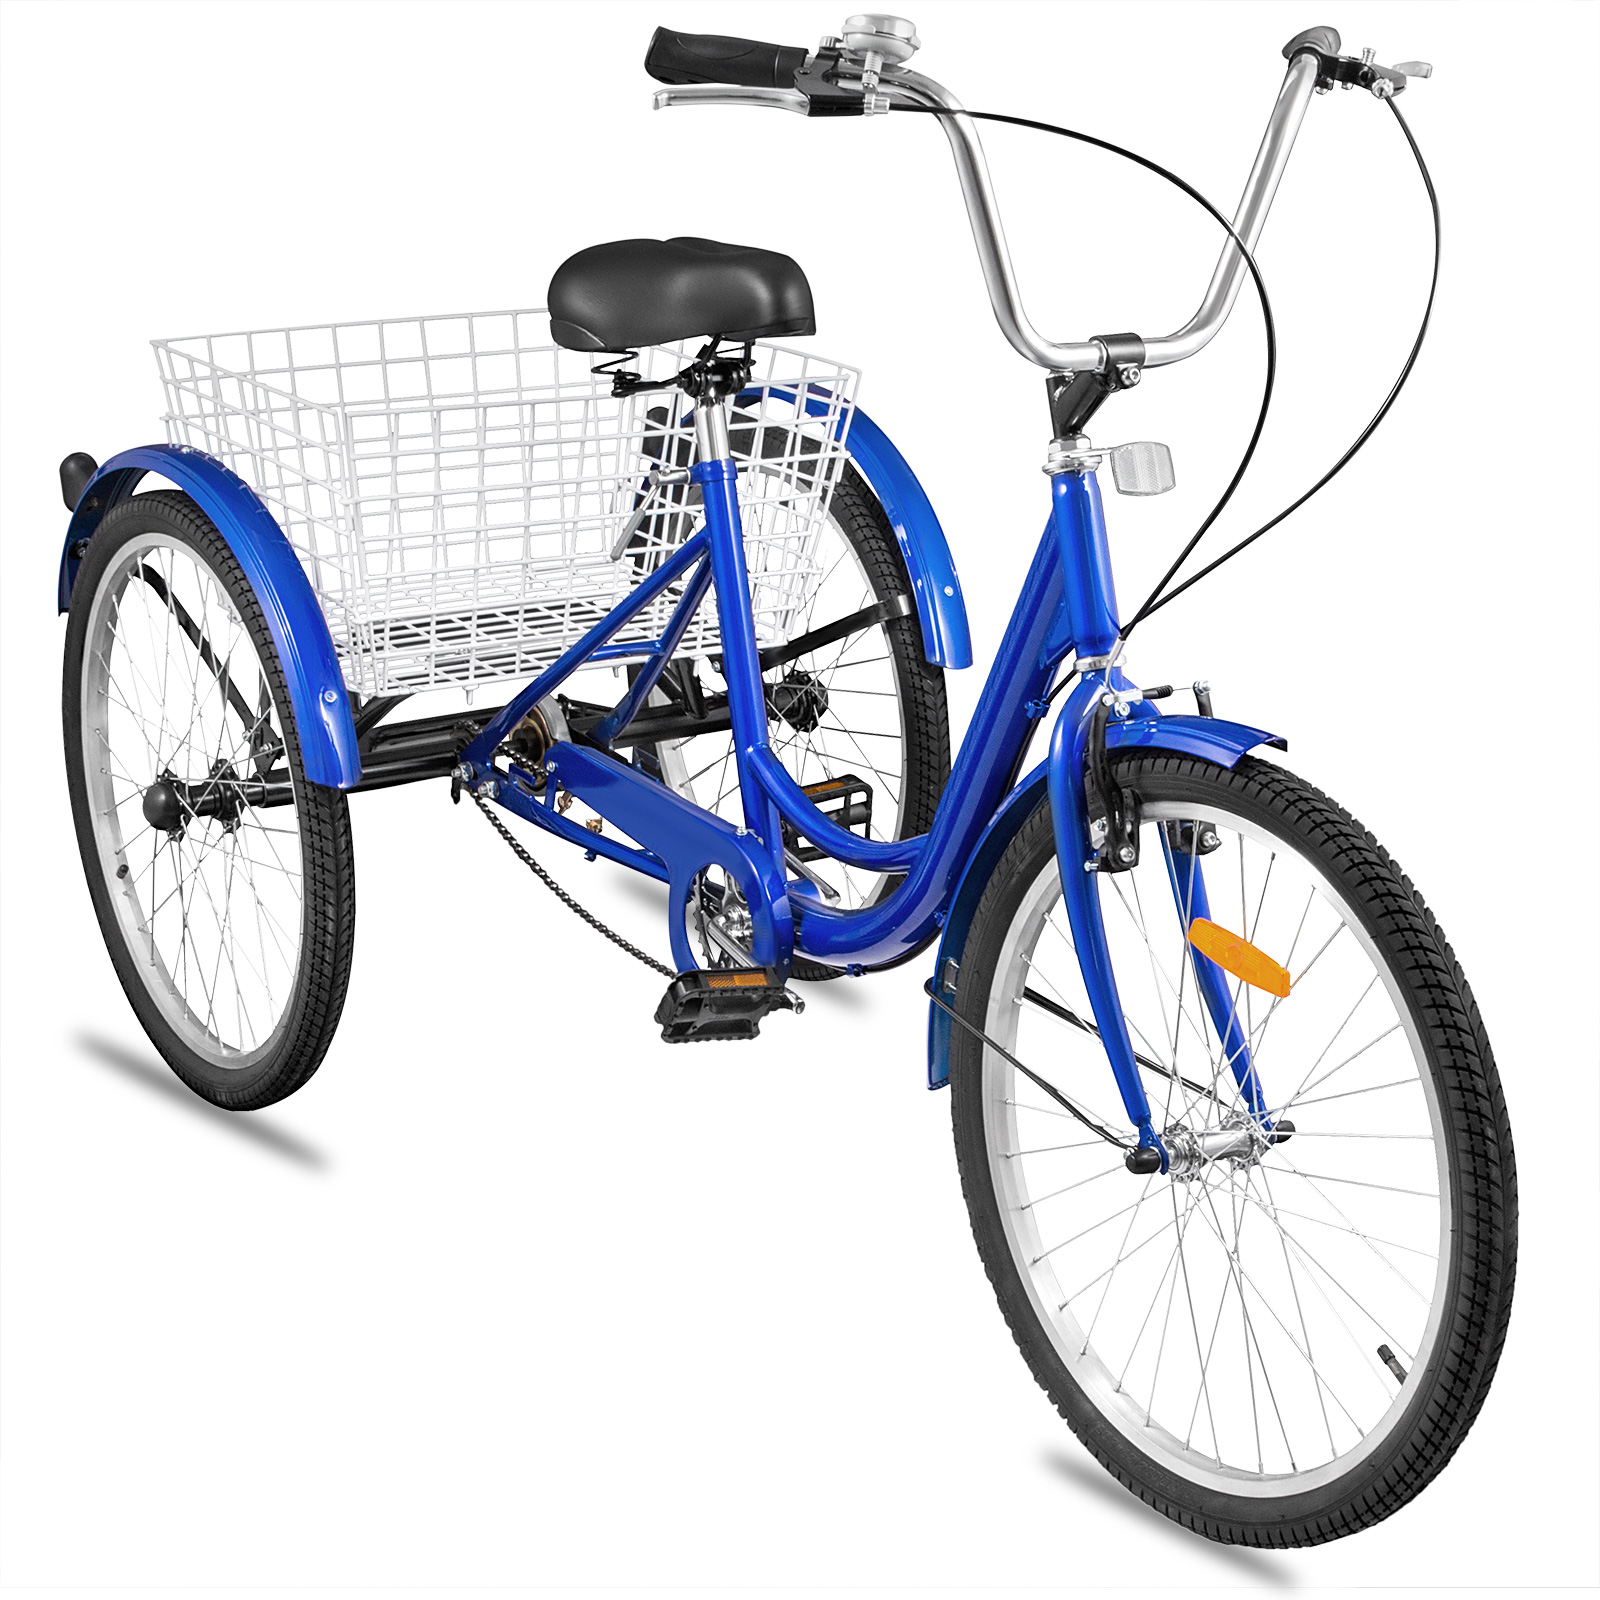 20-24-26-034-Adult-Tricycle-1-7-Speed-3-Wheel-Large-Basket-For-Shopping-Optional thumbnail 249